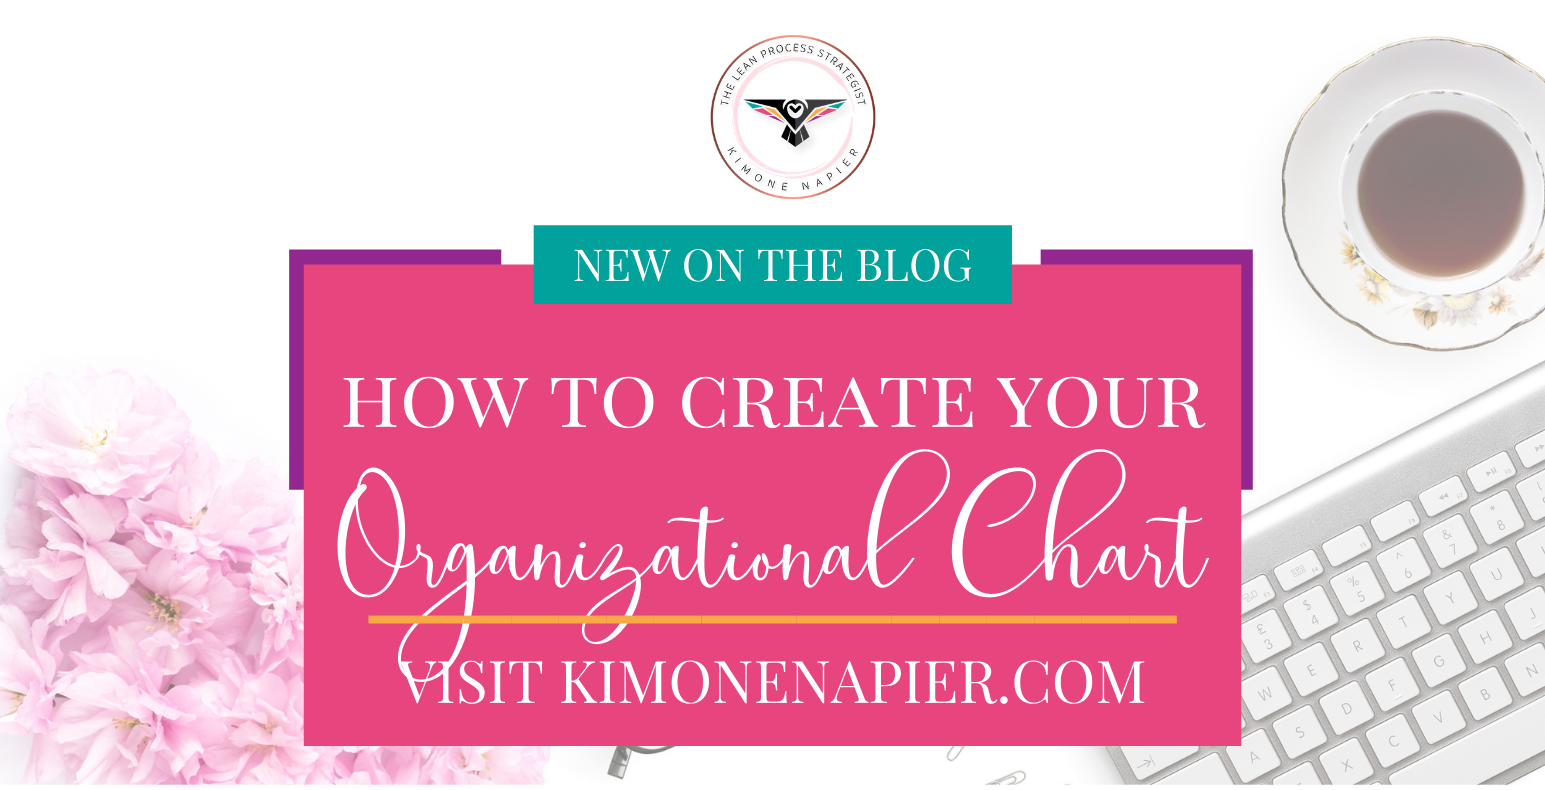 how-to-create-your-organizational-chart